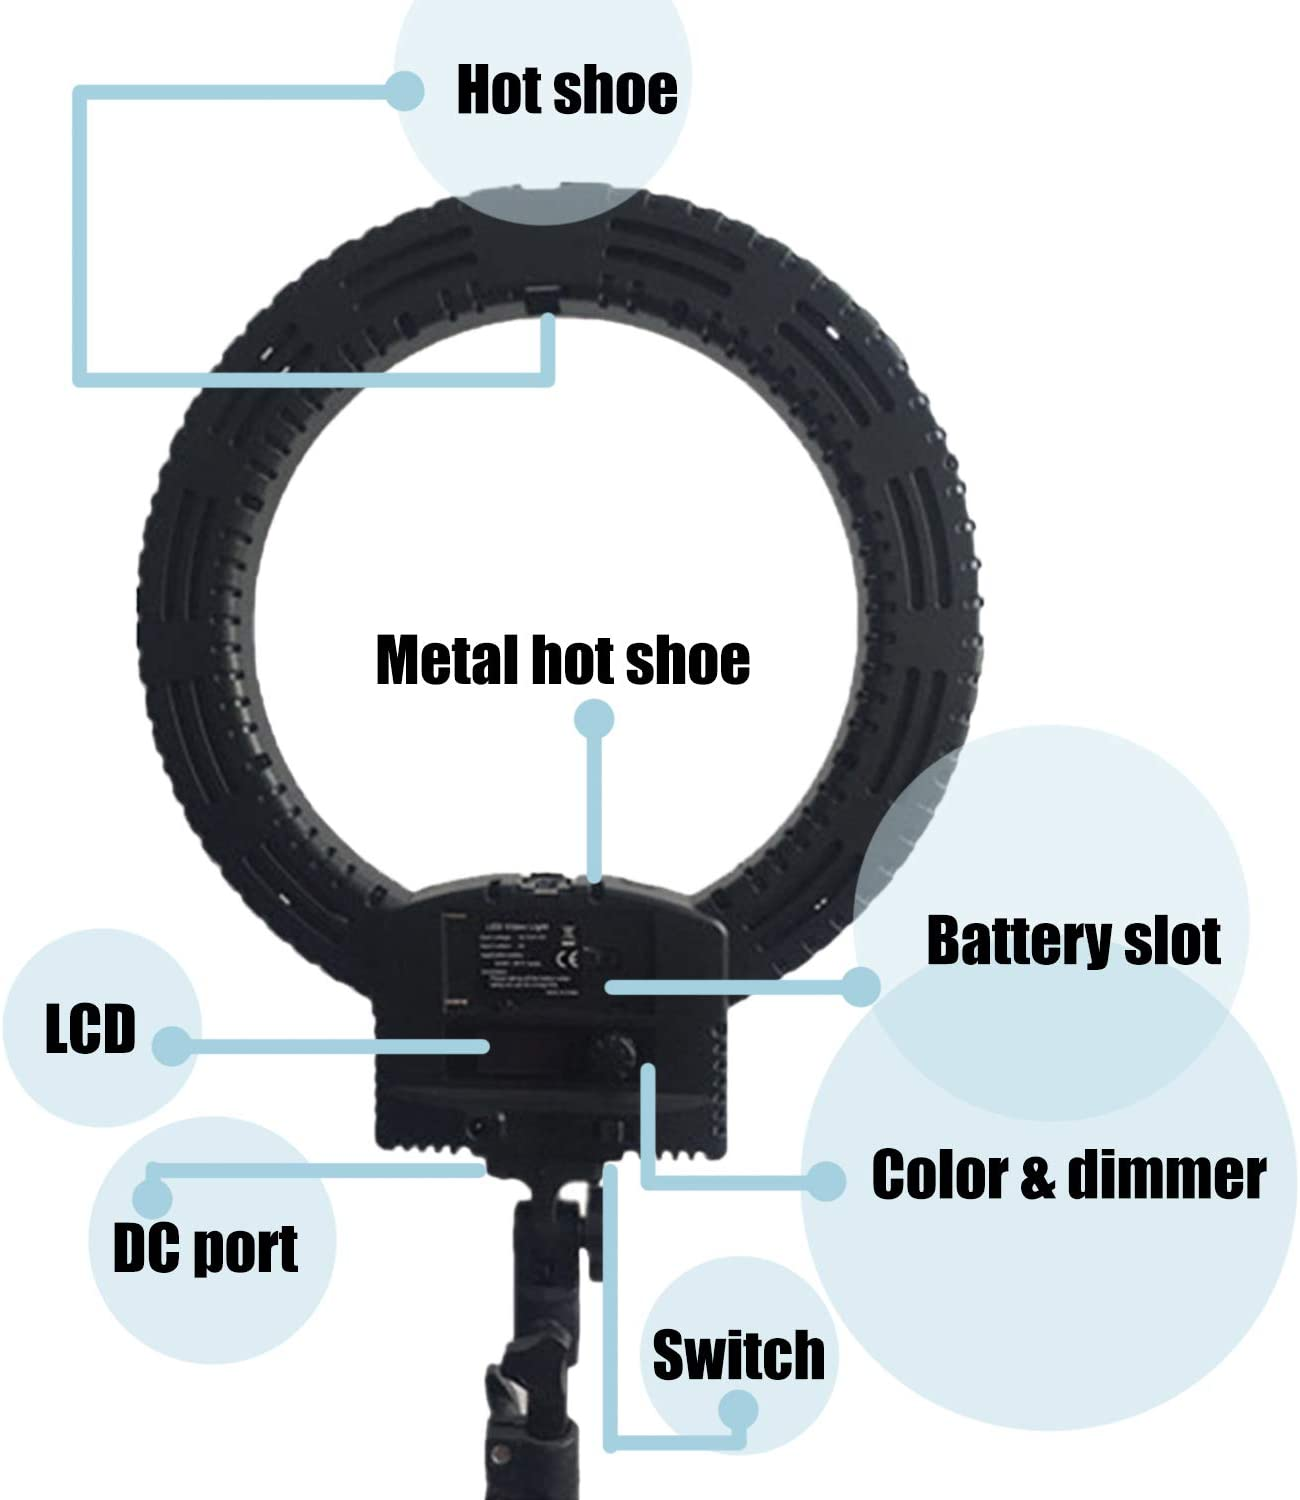 Star Light Eyes Light 36W 3200K-5600K with Tripod and Phone Holder for Video MEELMAXX 12inch inner//14inch Outer LED Ring Light Image and Make up CRI97+